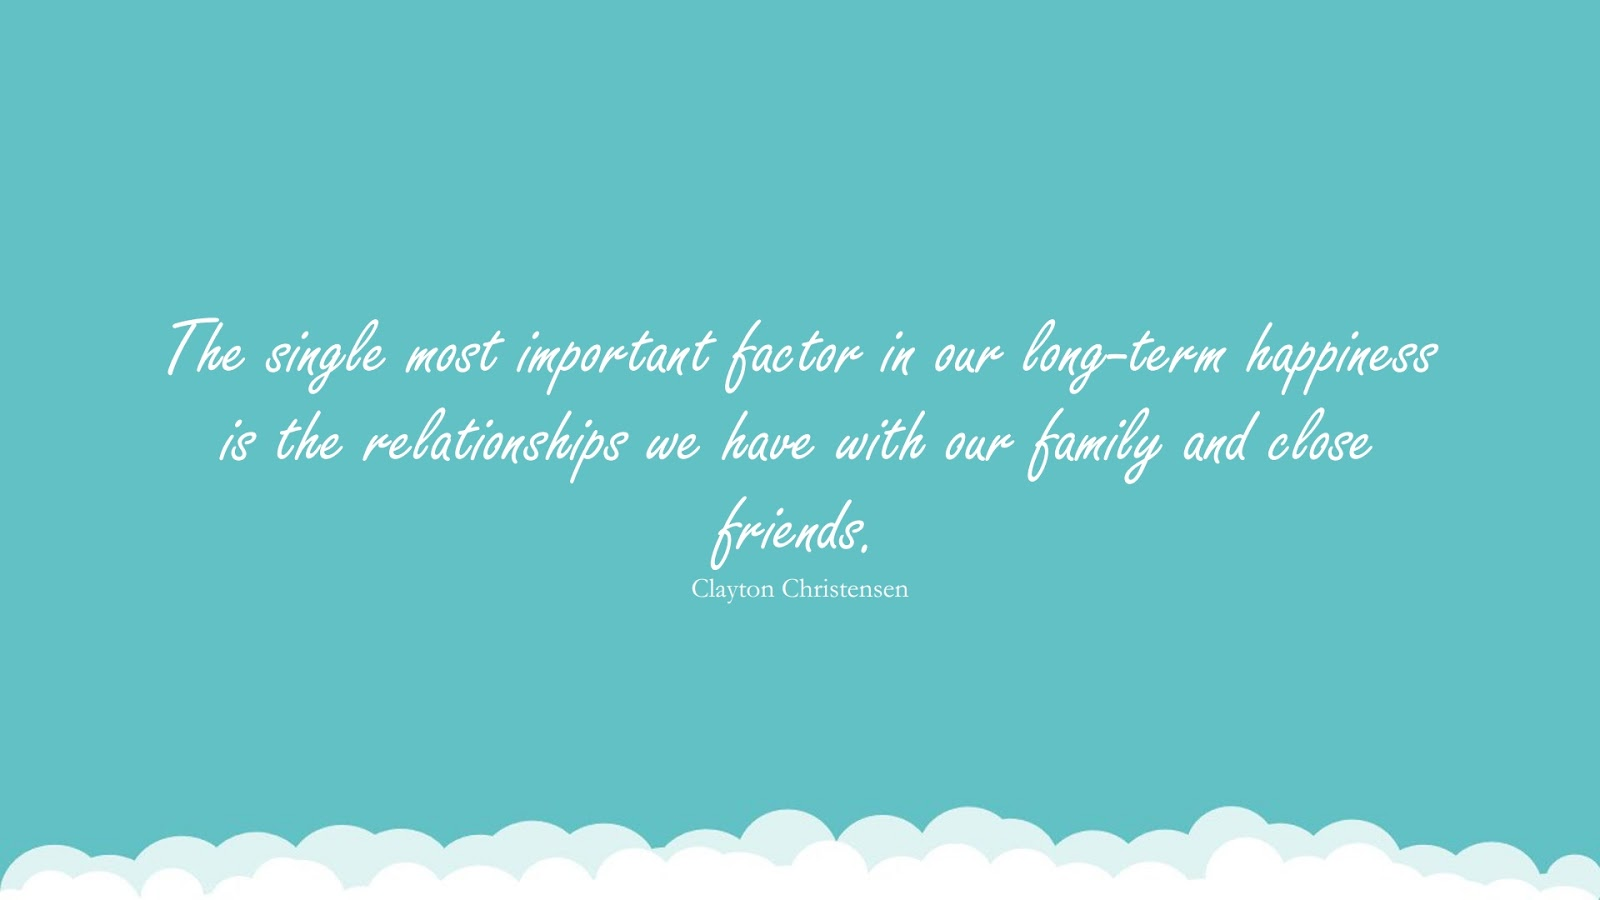 The single most important factor in our long-term happiness is the relationships we have with our family and close friends. (Clayton Christensen);  #RelationshipQuotes